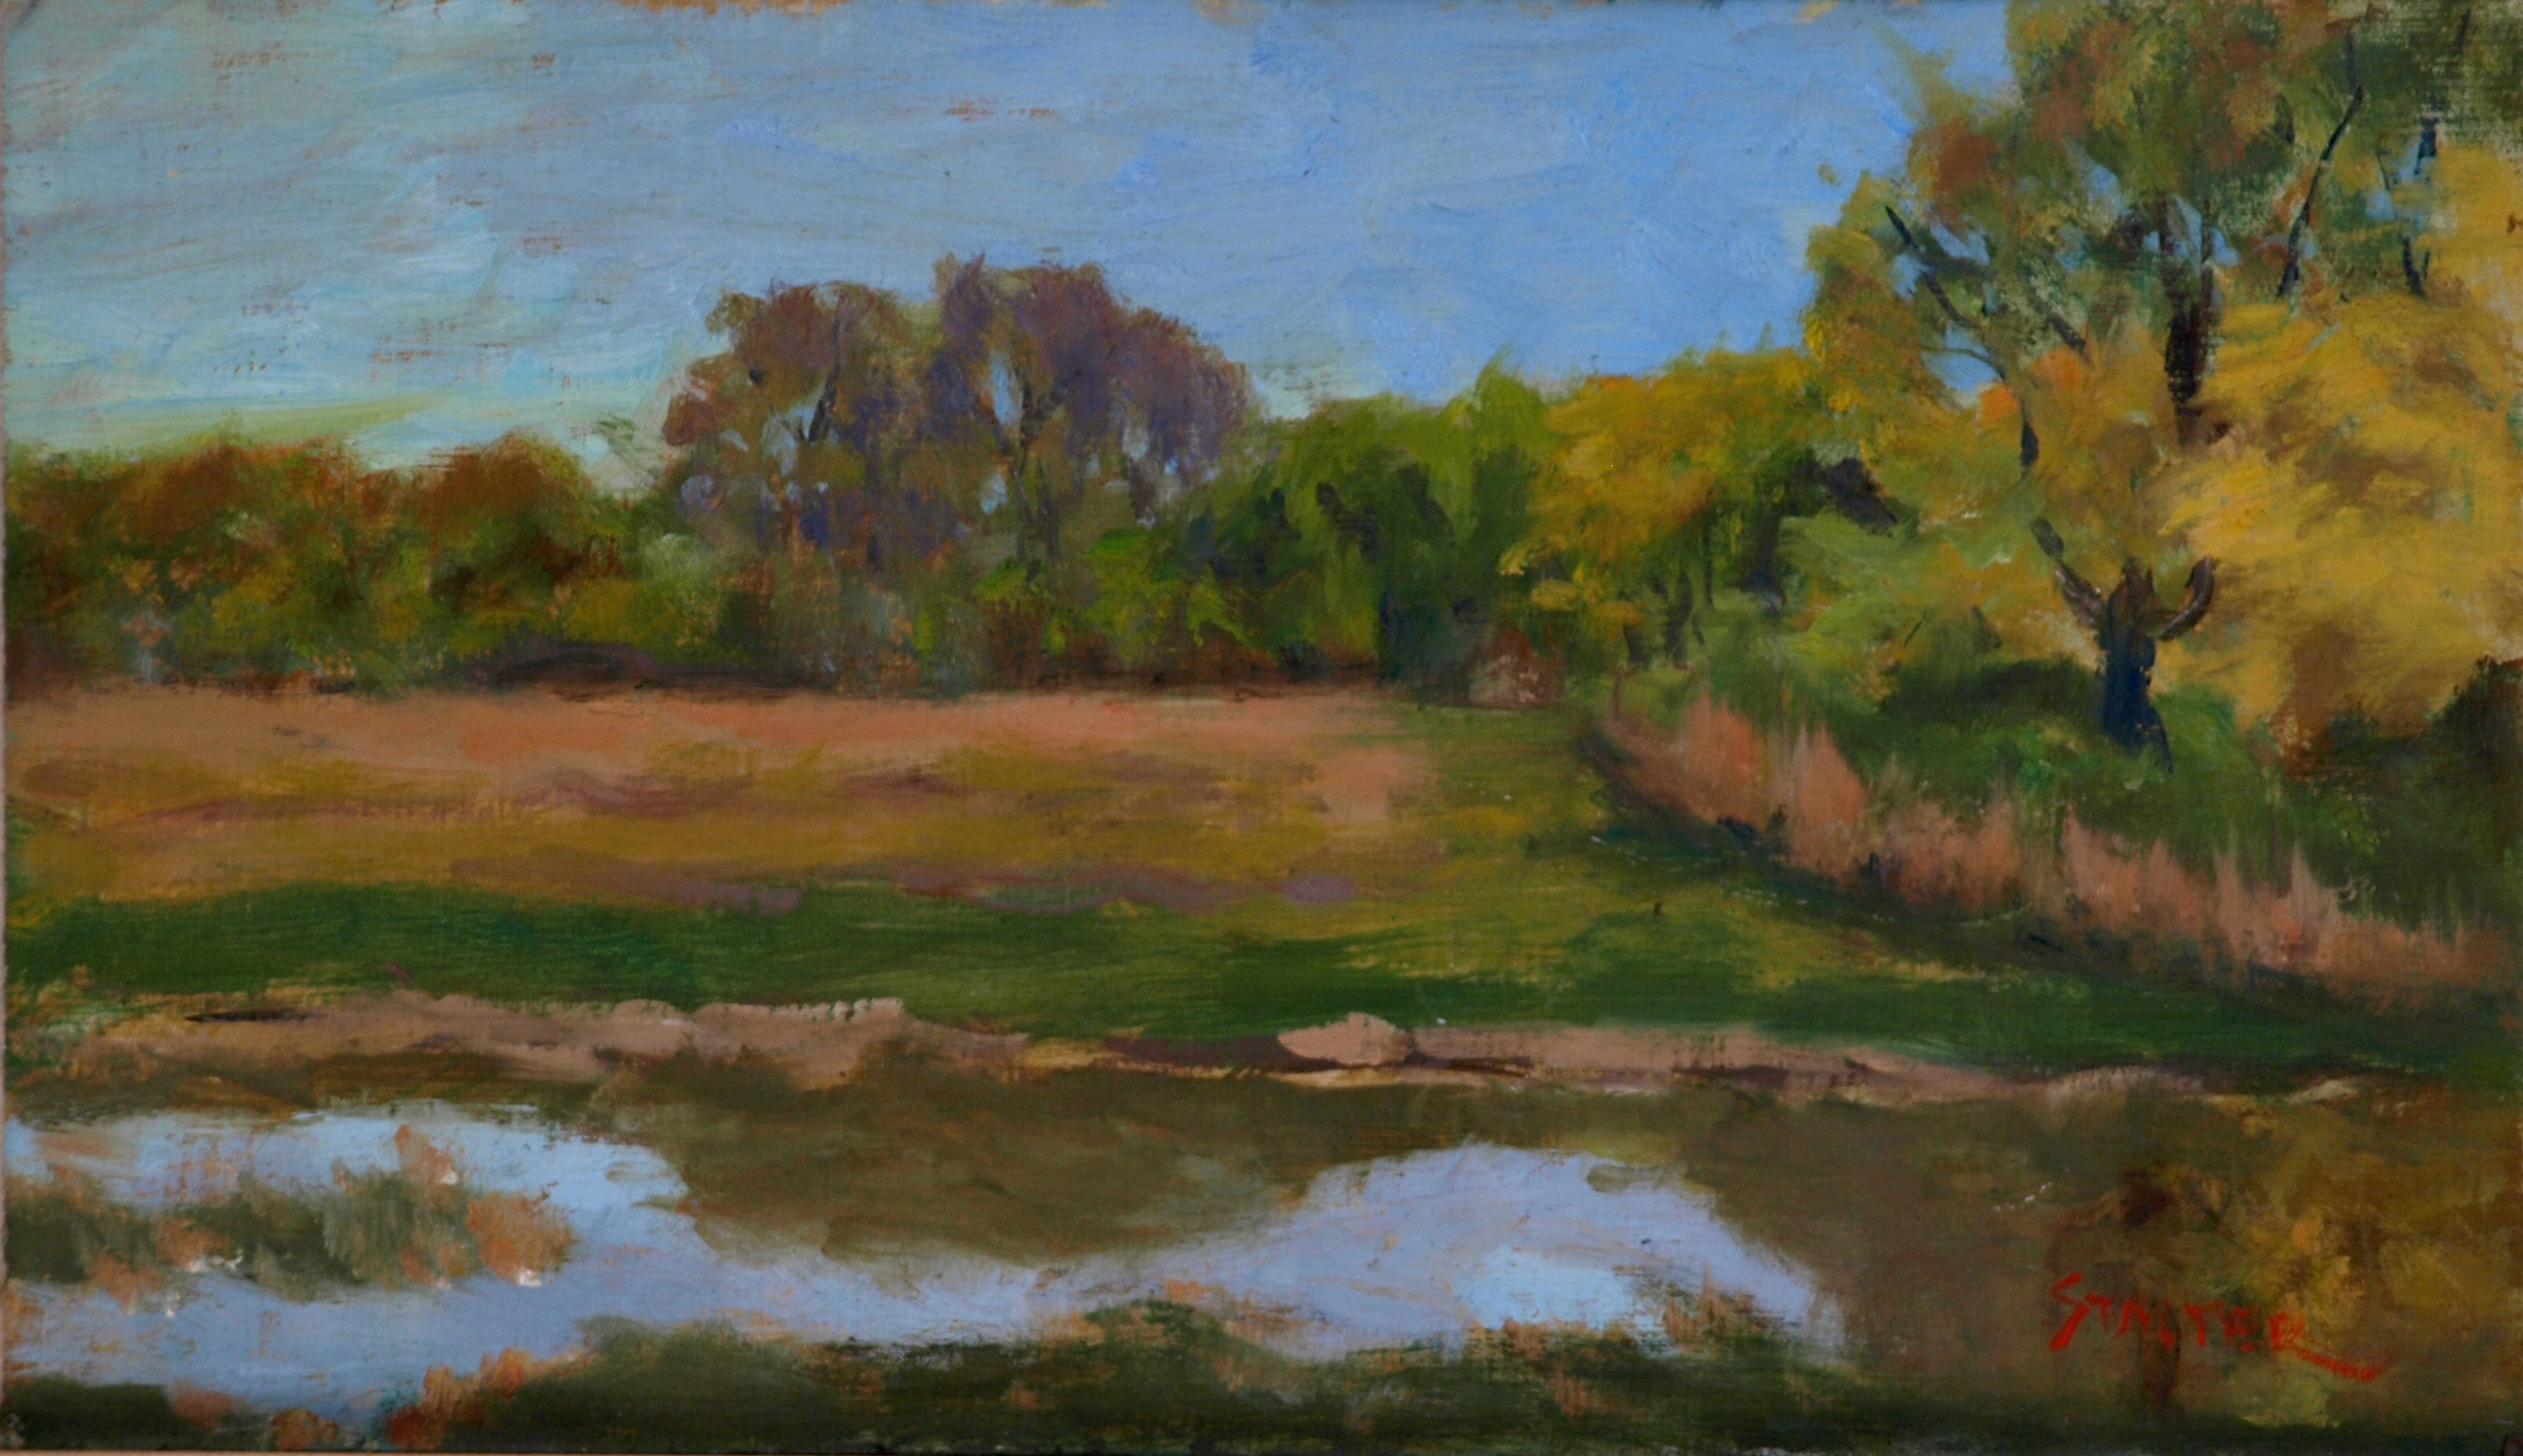 Marsh Reflections, Oil on Linen on Panel, 8 x 14 Inches, by Richard Stalter, $225